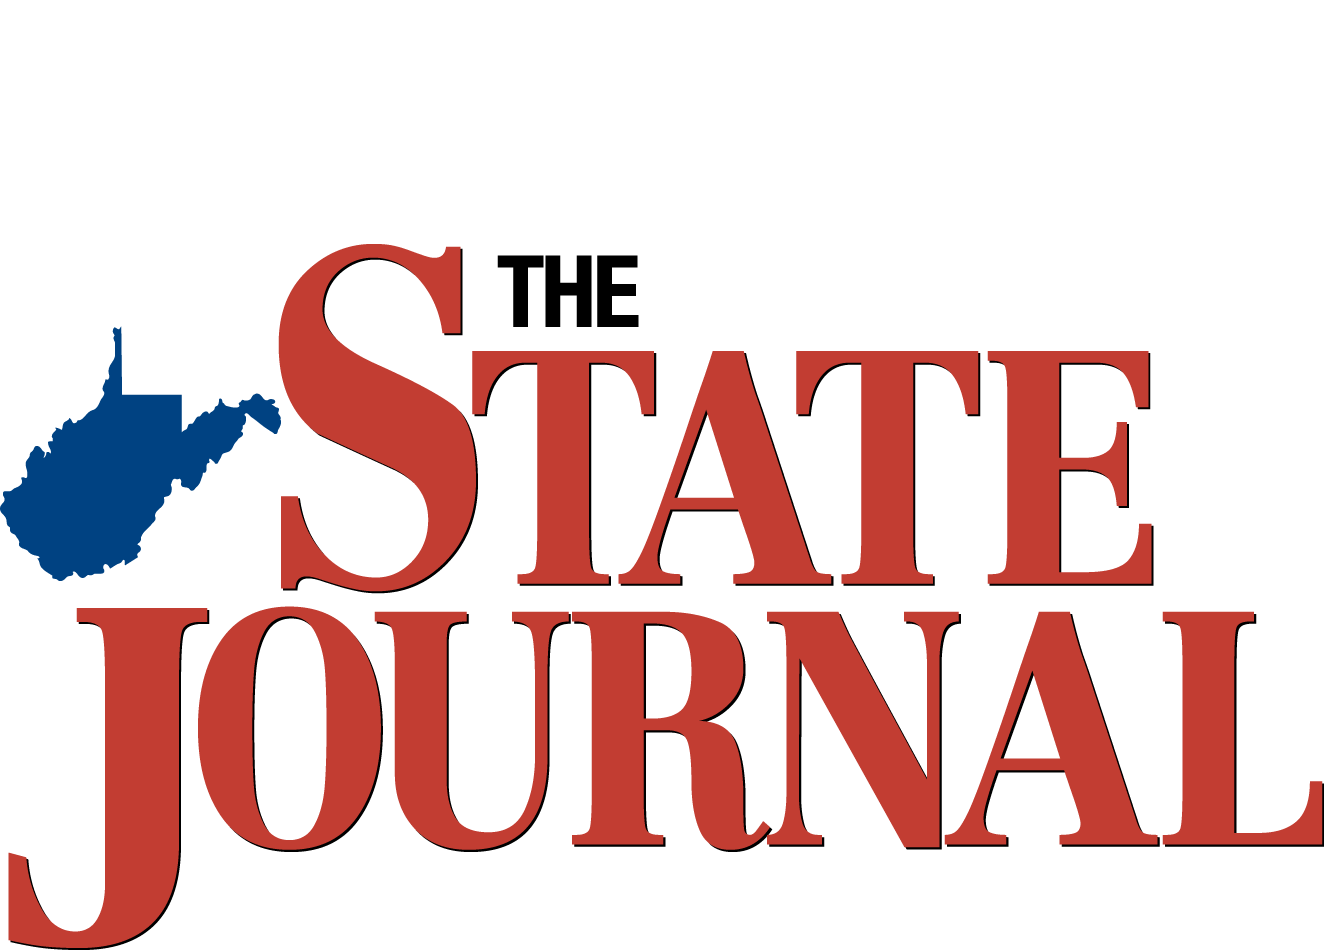 State Journal Sponsor Logo